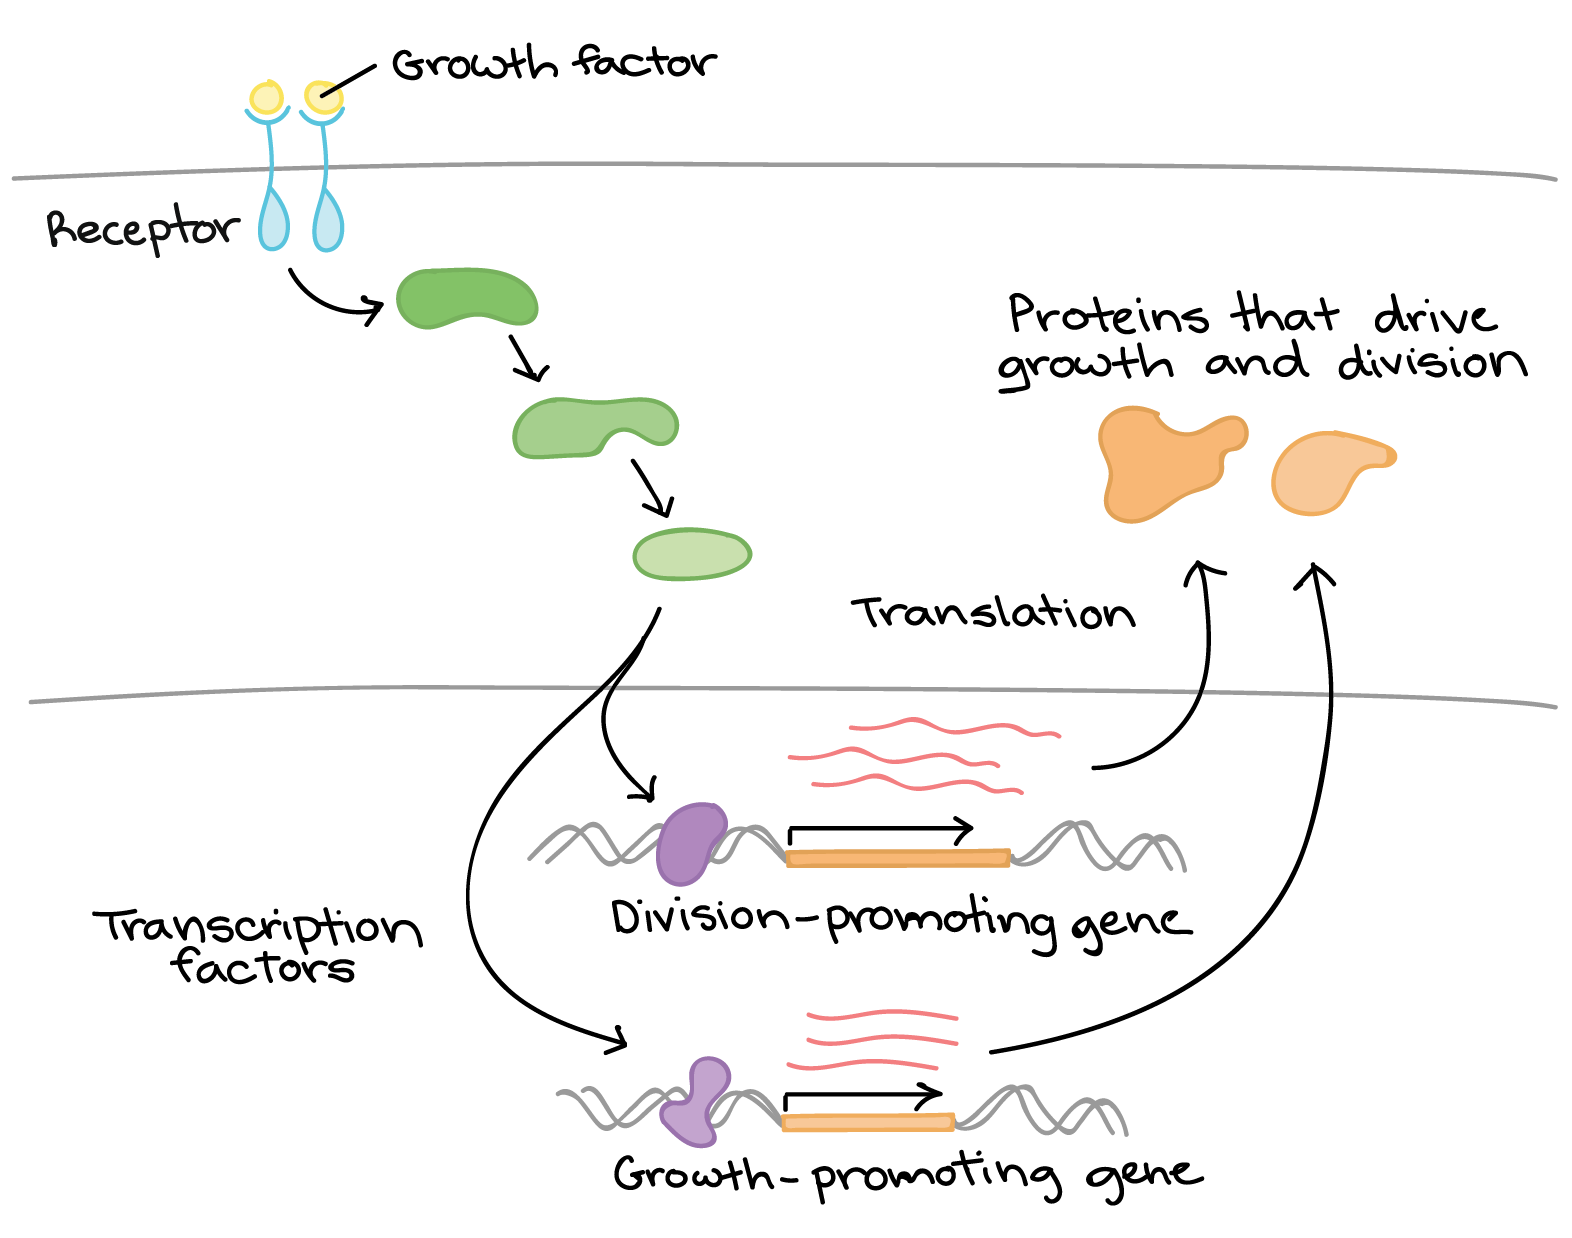 Chromatin drawing transcription factor. Overview eukaryotic gene regulation